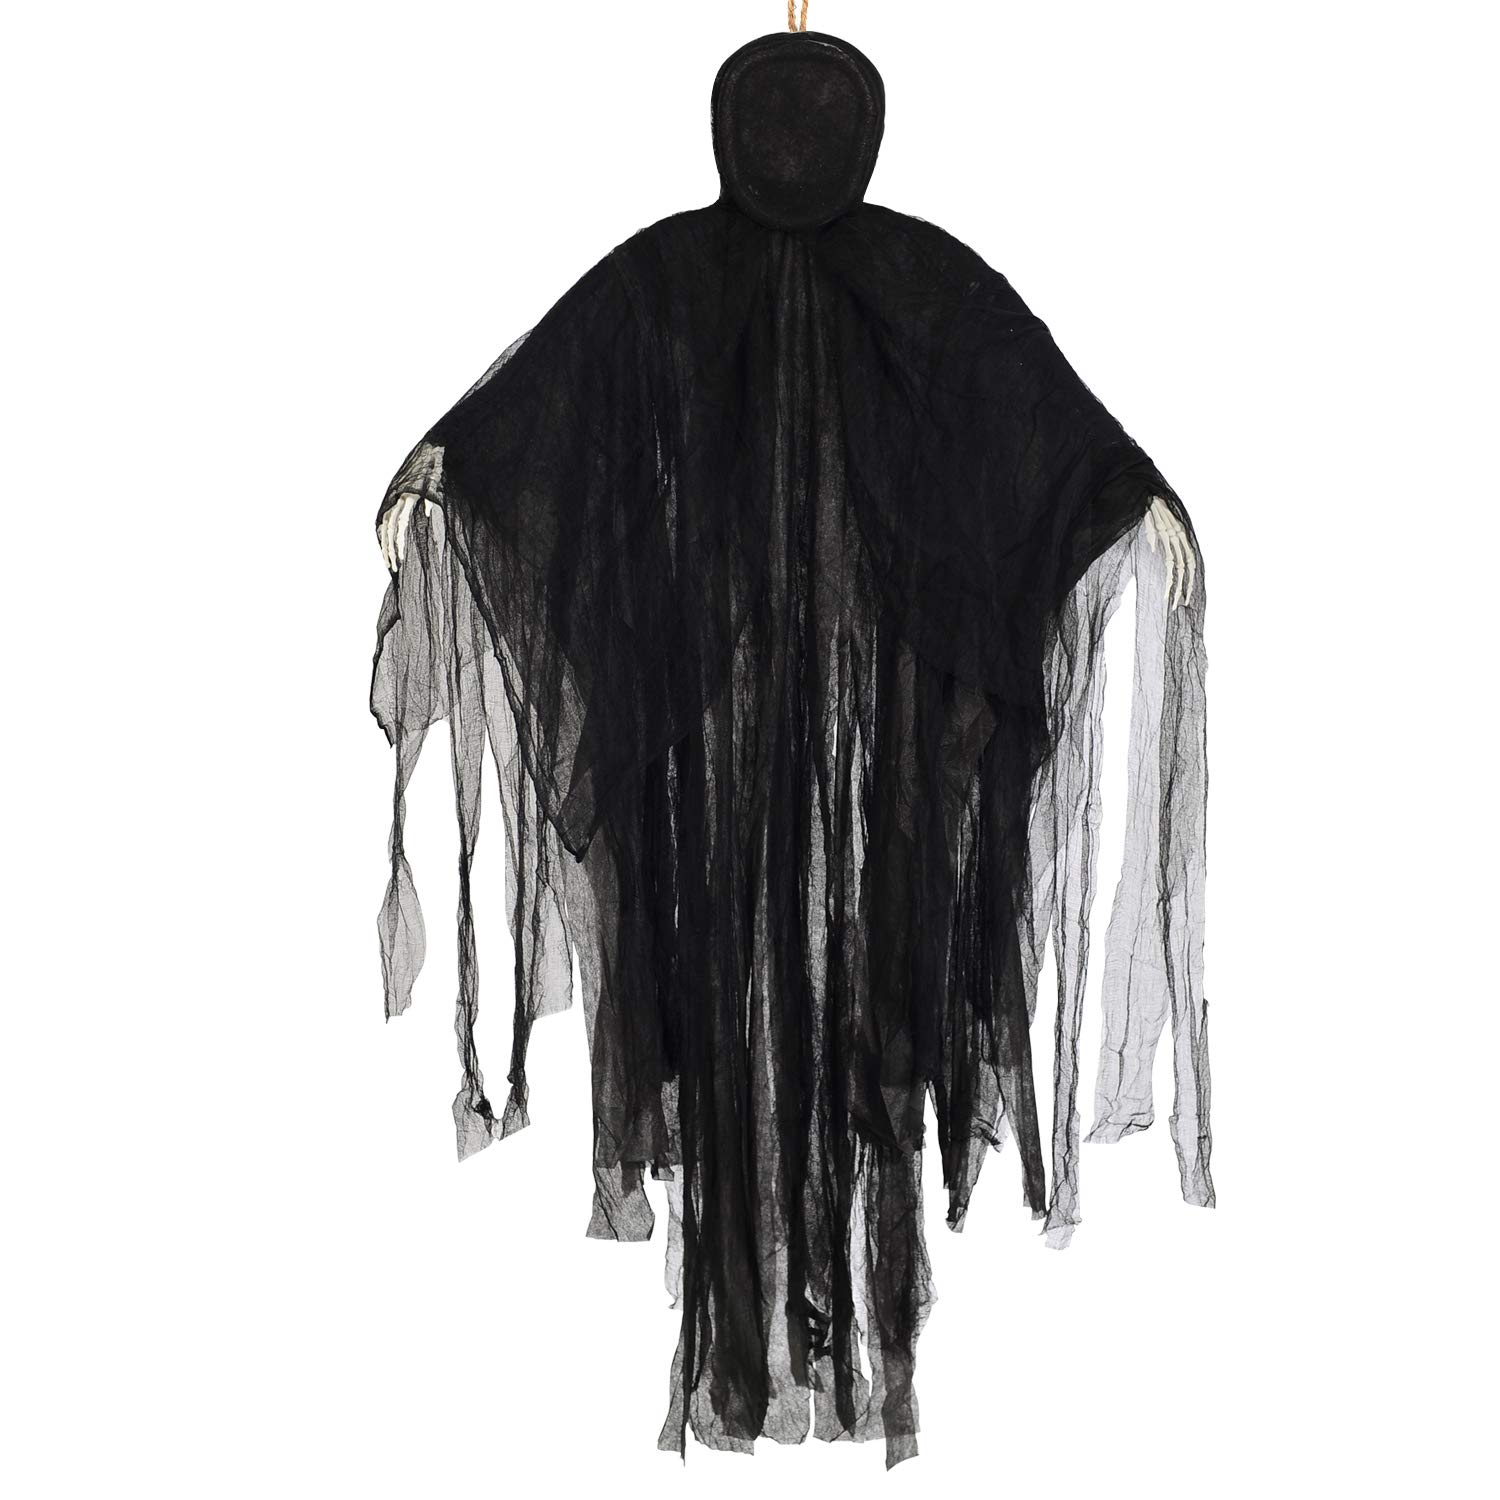 Aobuy 5 Ft Halloween Hanging Grim Reaper, Creepy Faceless Ghost Large Life-Size Halloween Decor Prop